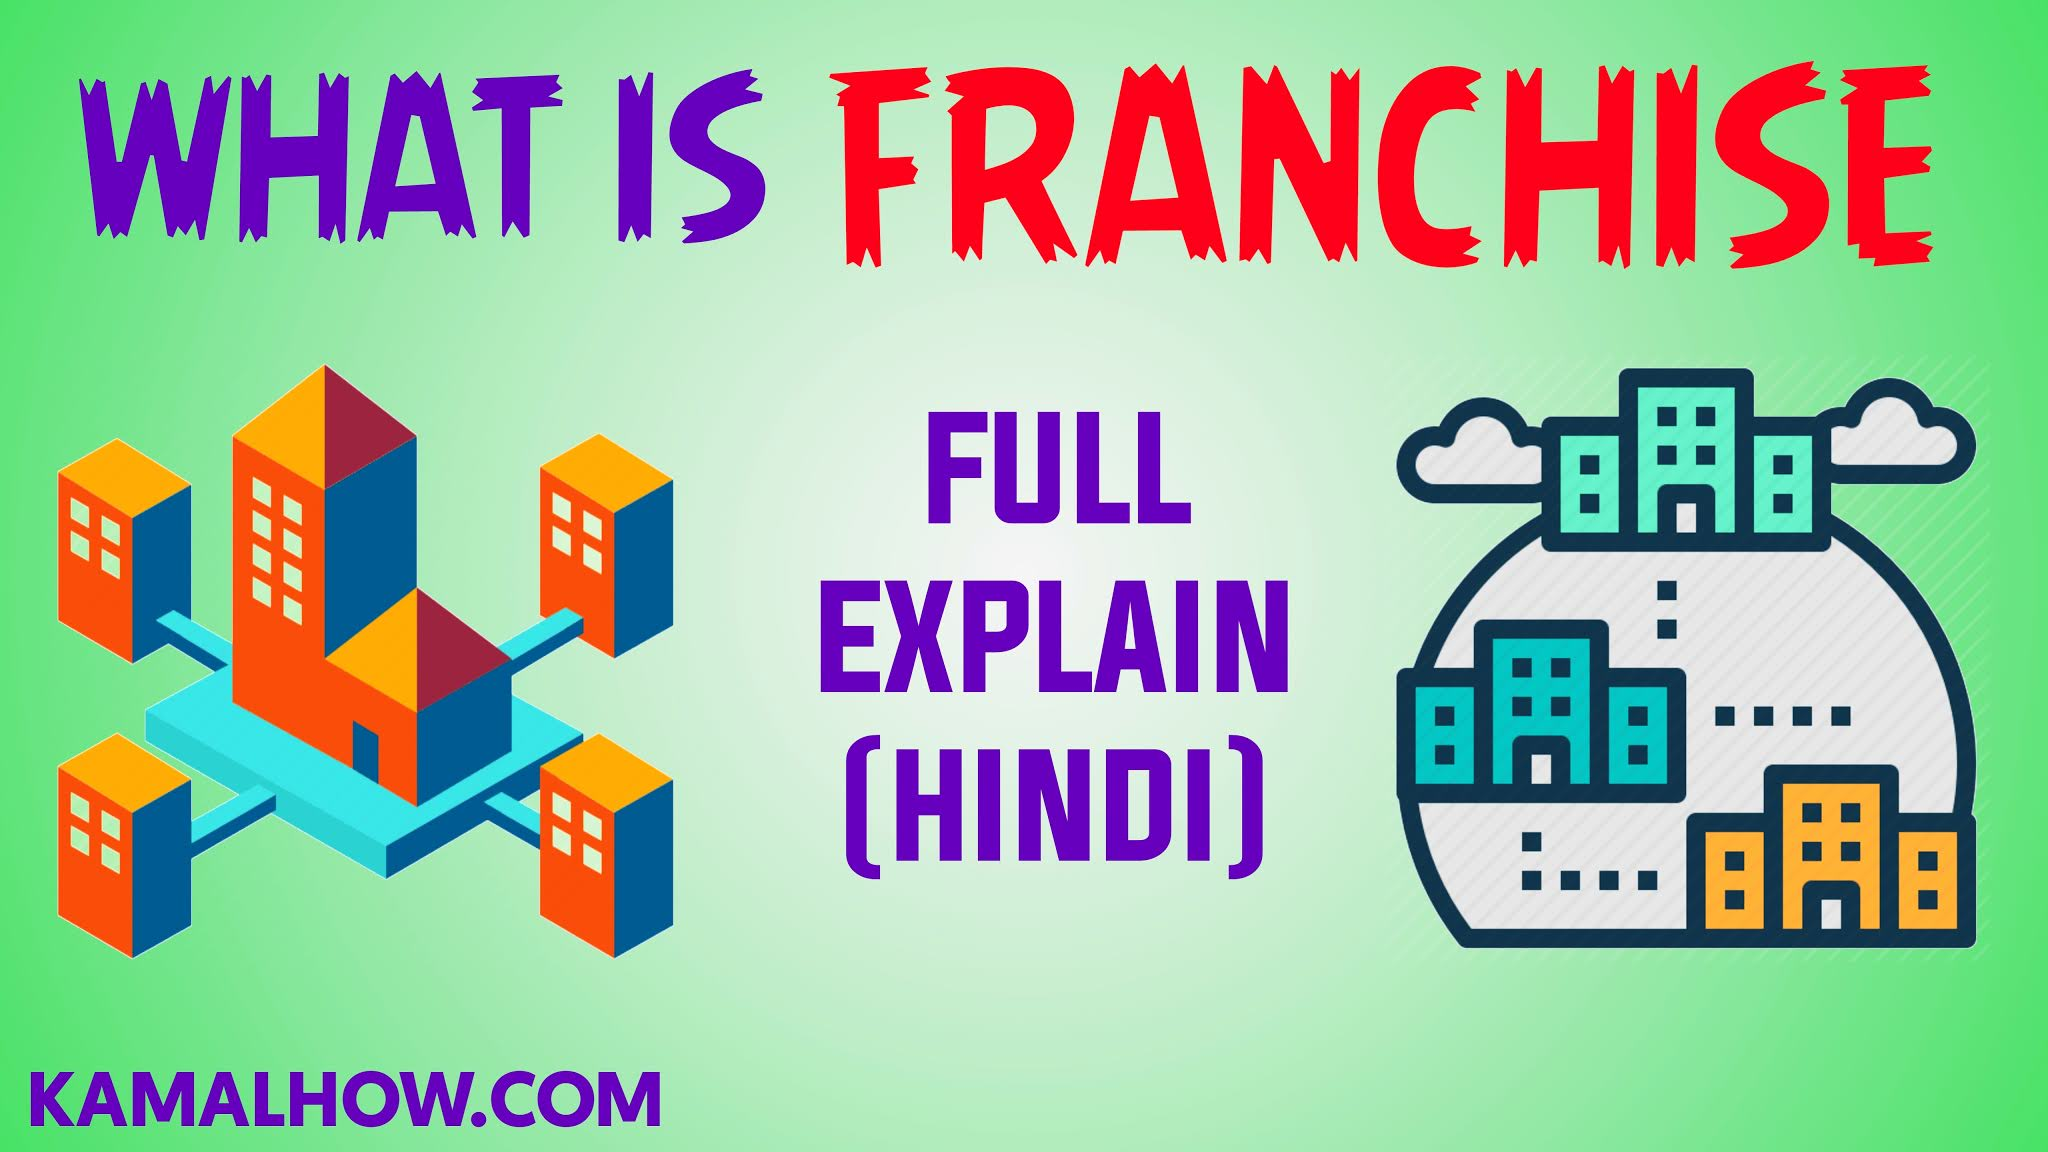 franchise business ideas india delhi, franchise india holdings limited, models franchise business opprtunities